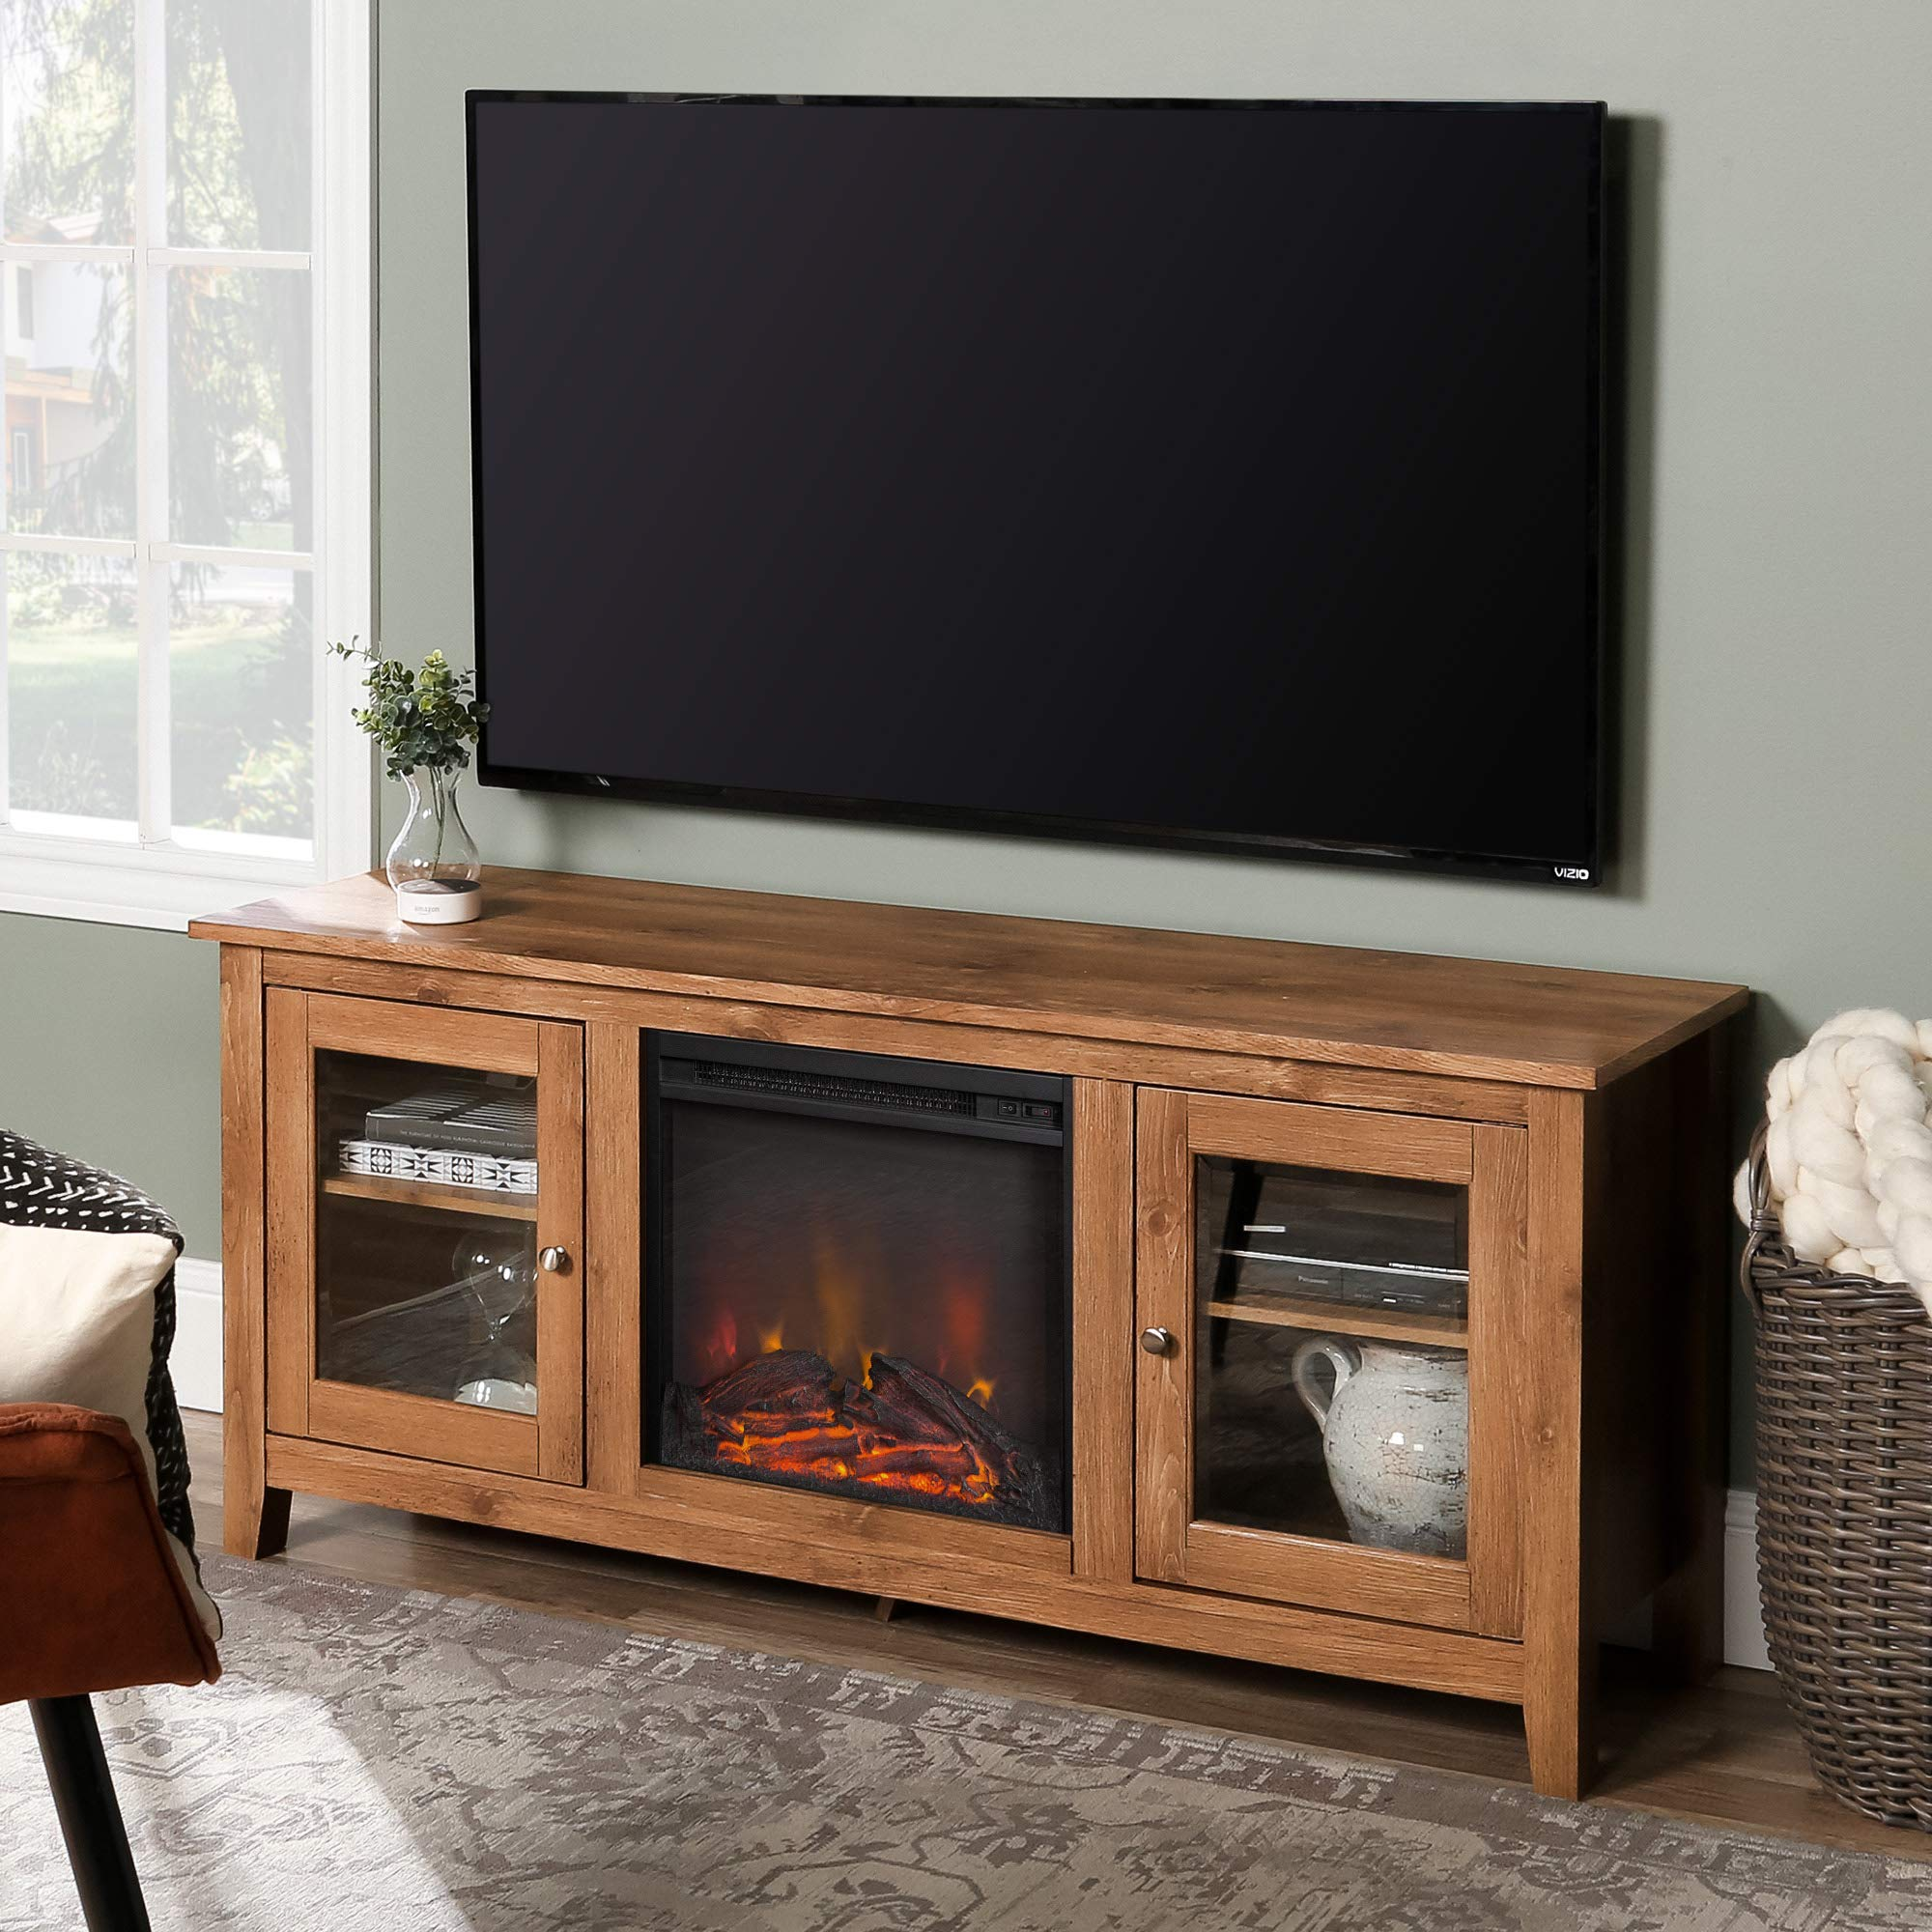 WE Furniture Media Console Fireplace